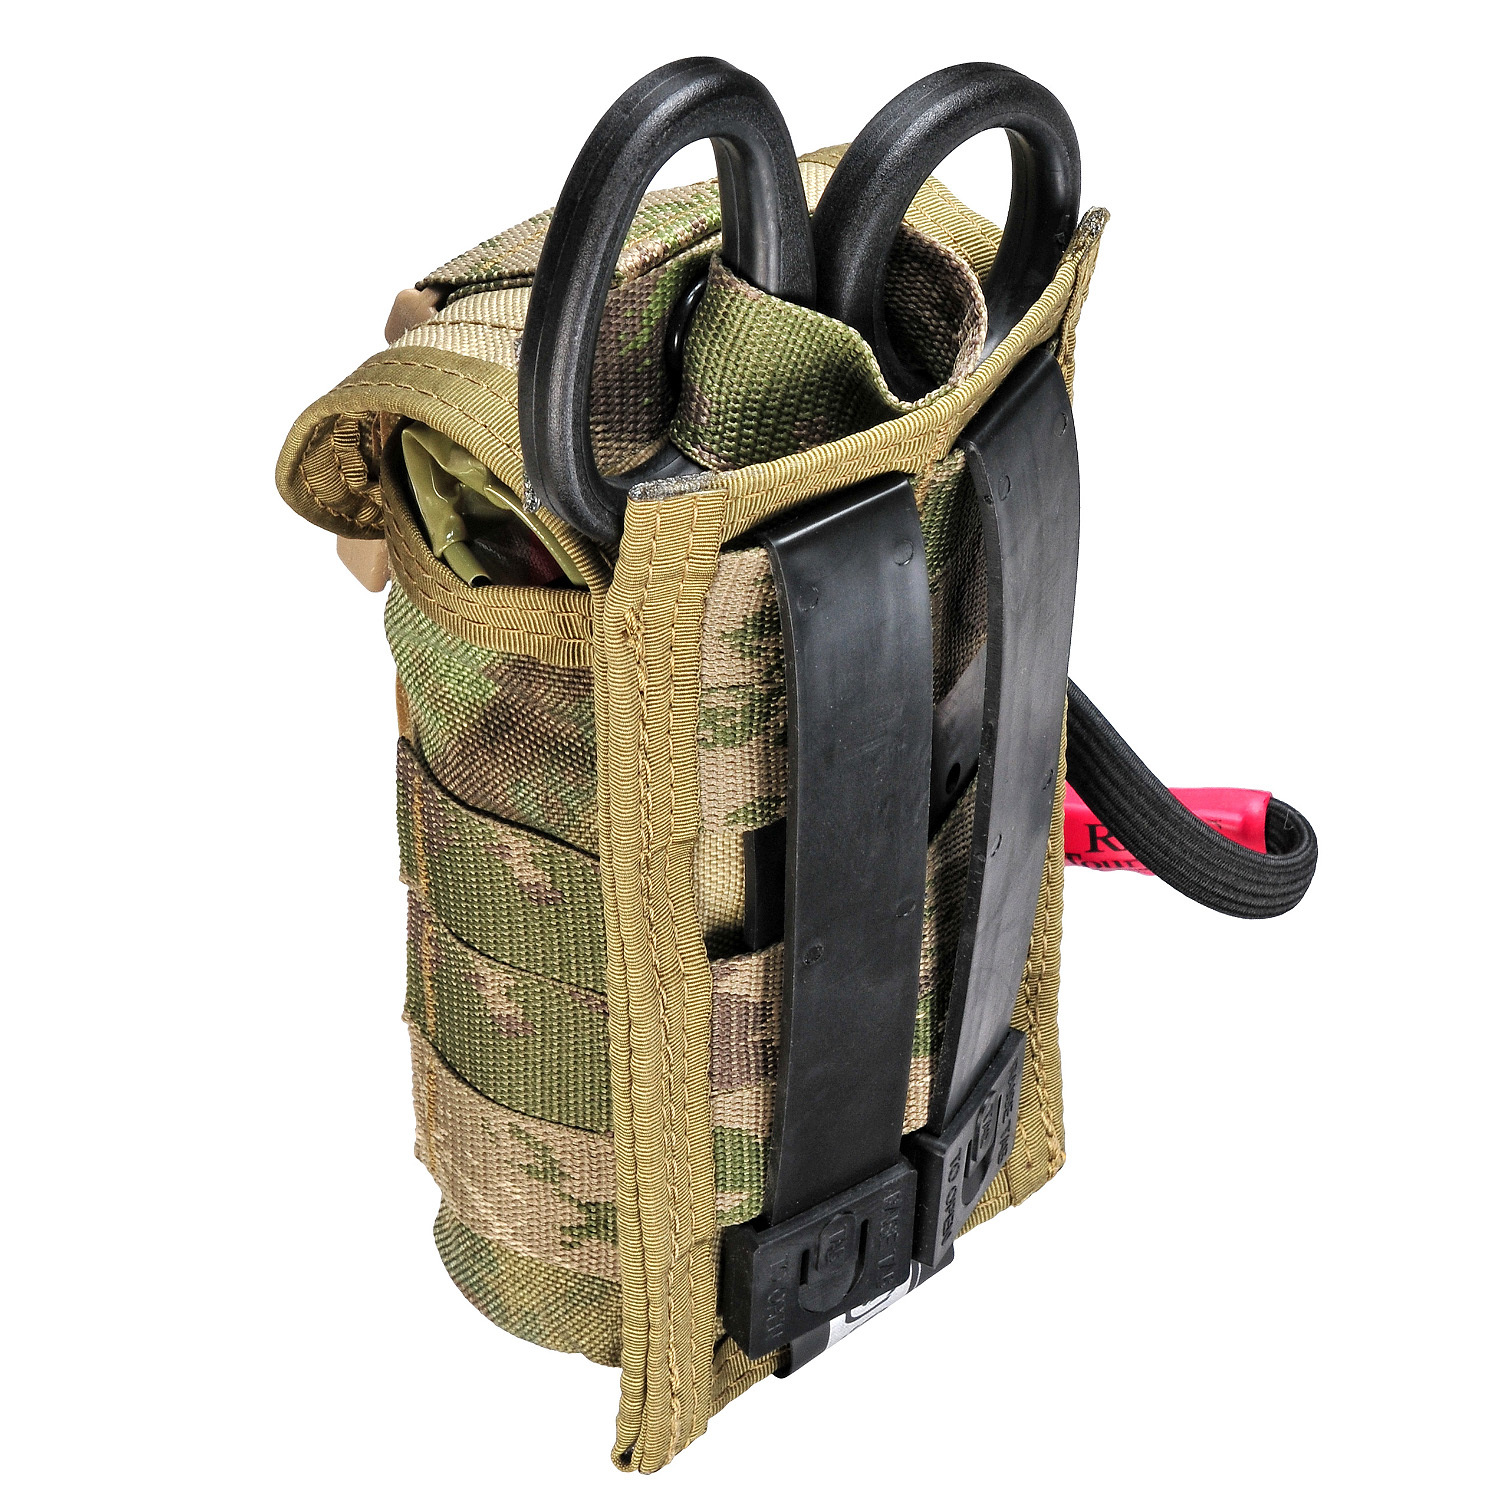 Медицинский подсумок Bleeder/Blowout High Speed Gear, цвет – Multicam